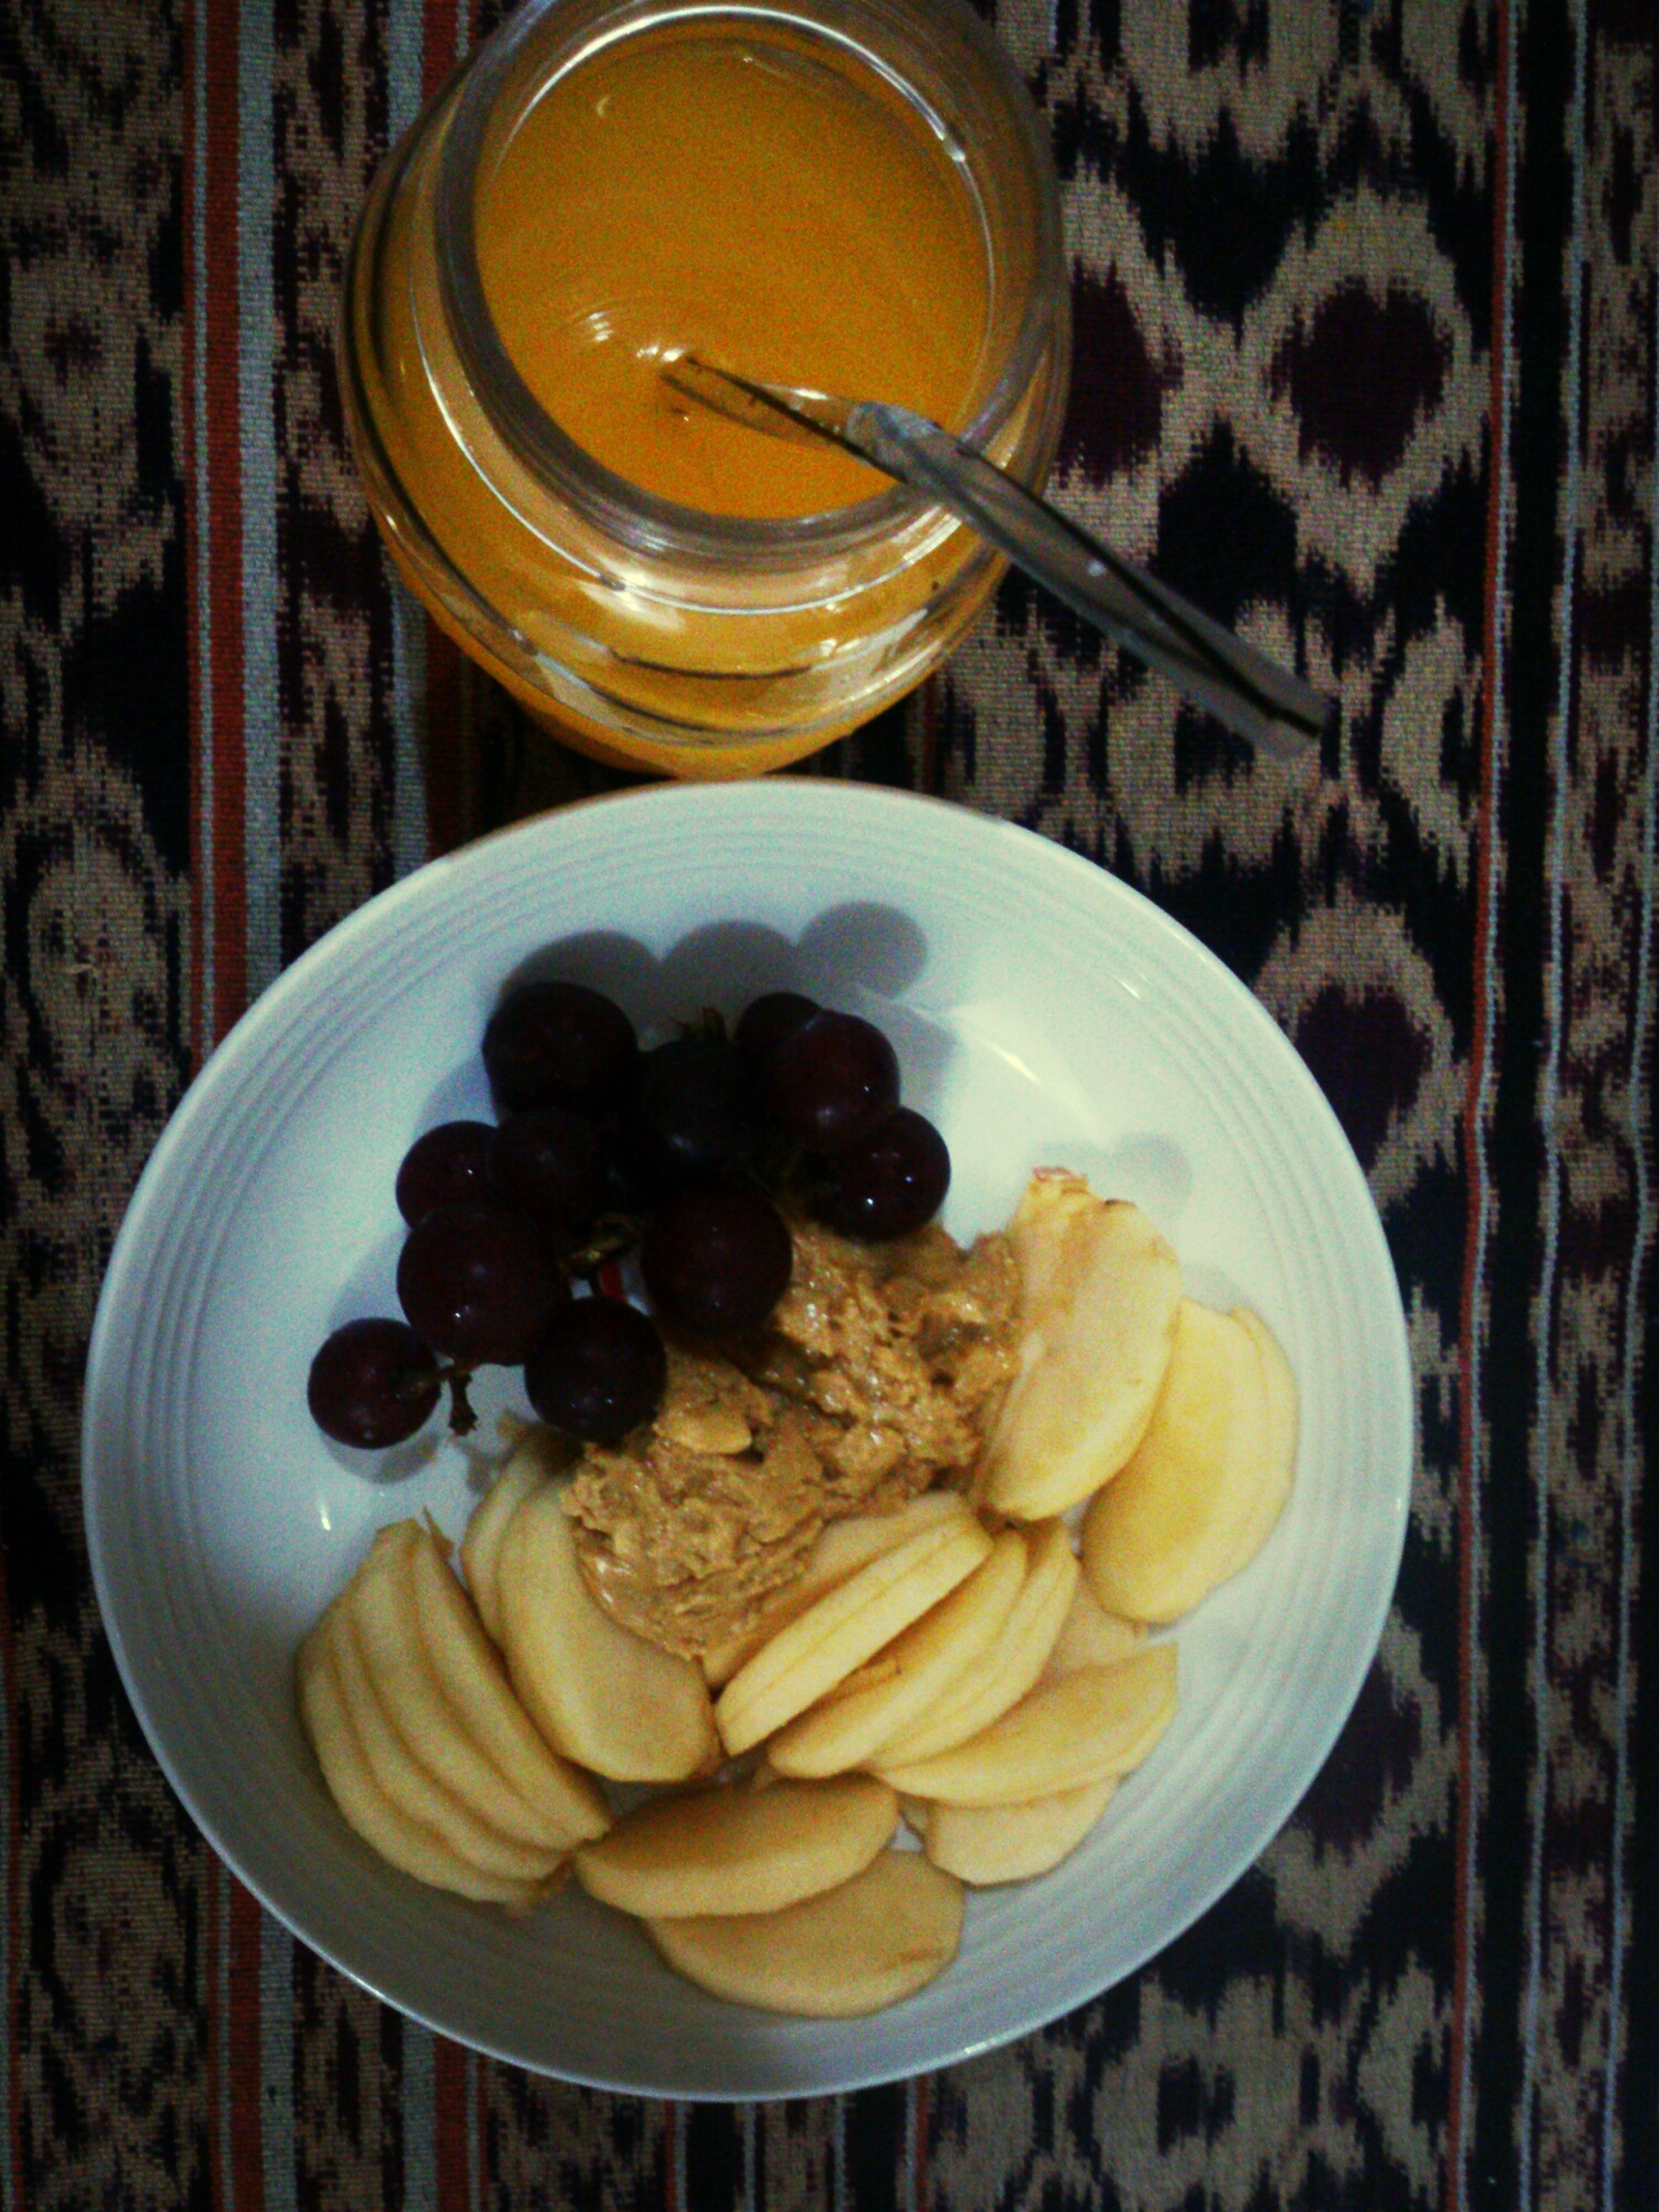 food and drink, freshness, food, indoors, ready-to-eat, still life, plate, table, sweet food, indulgence, dessert, fruit, healthy eating, serving size, breakfast, close-up, temptation, high angle view, bowl